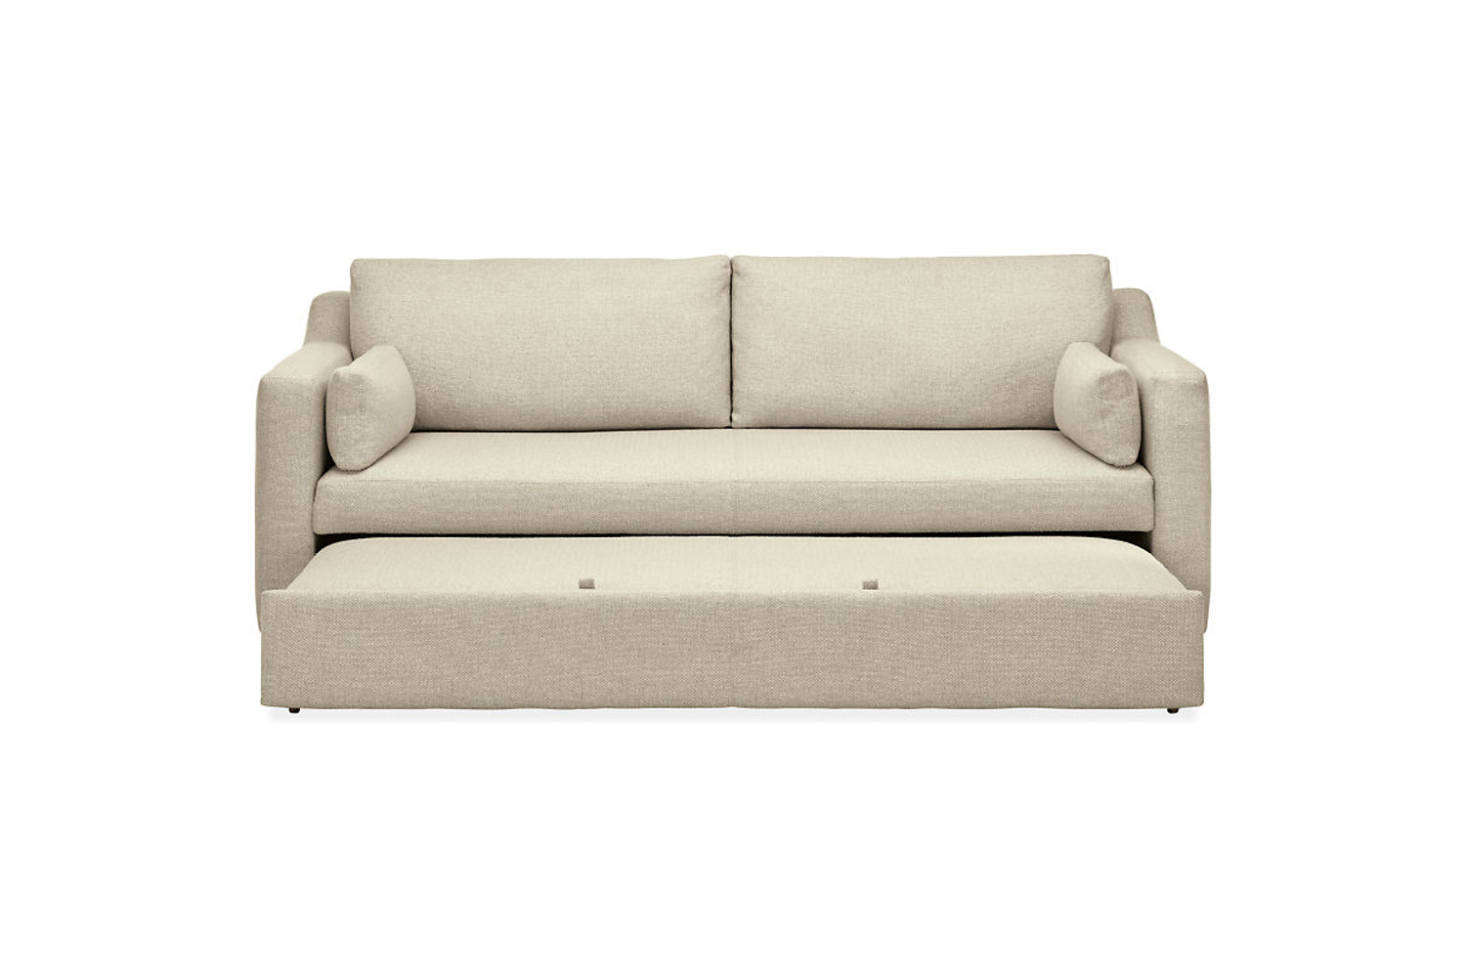 10 Easy Pieces Good Looking Sleeper Sofas Remodelista